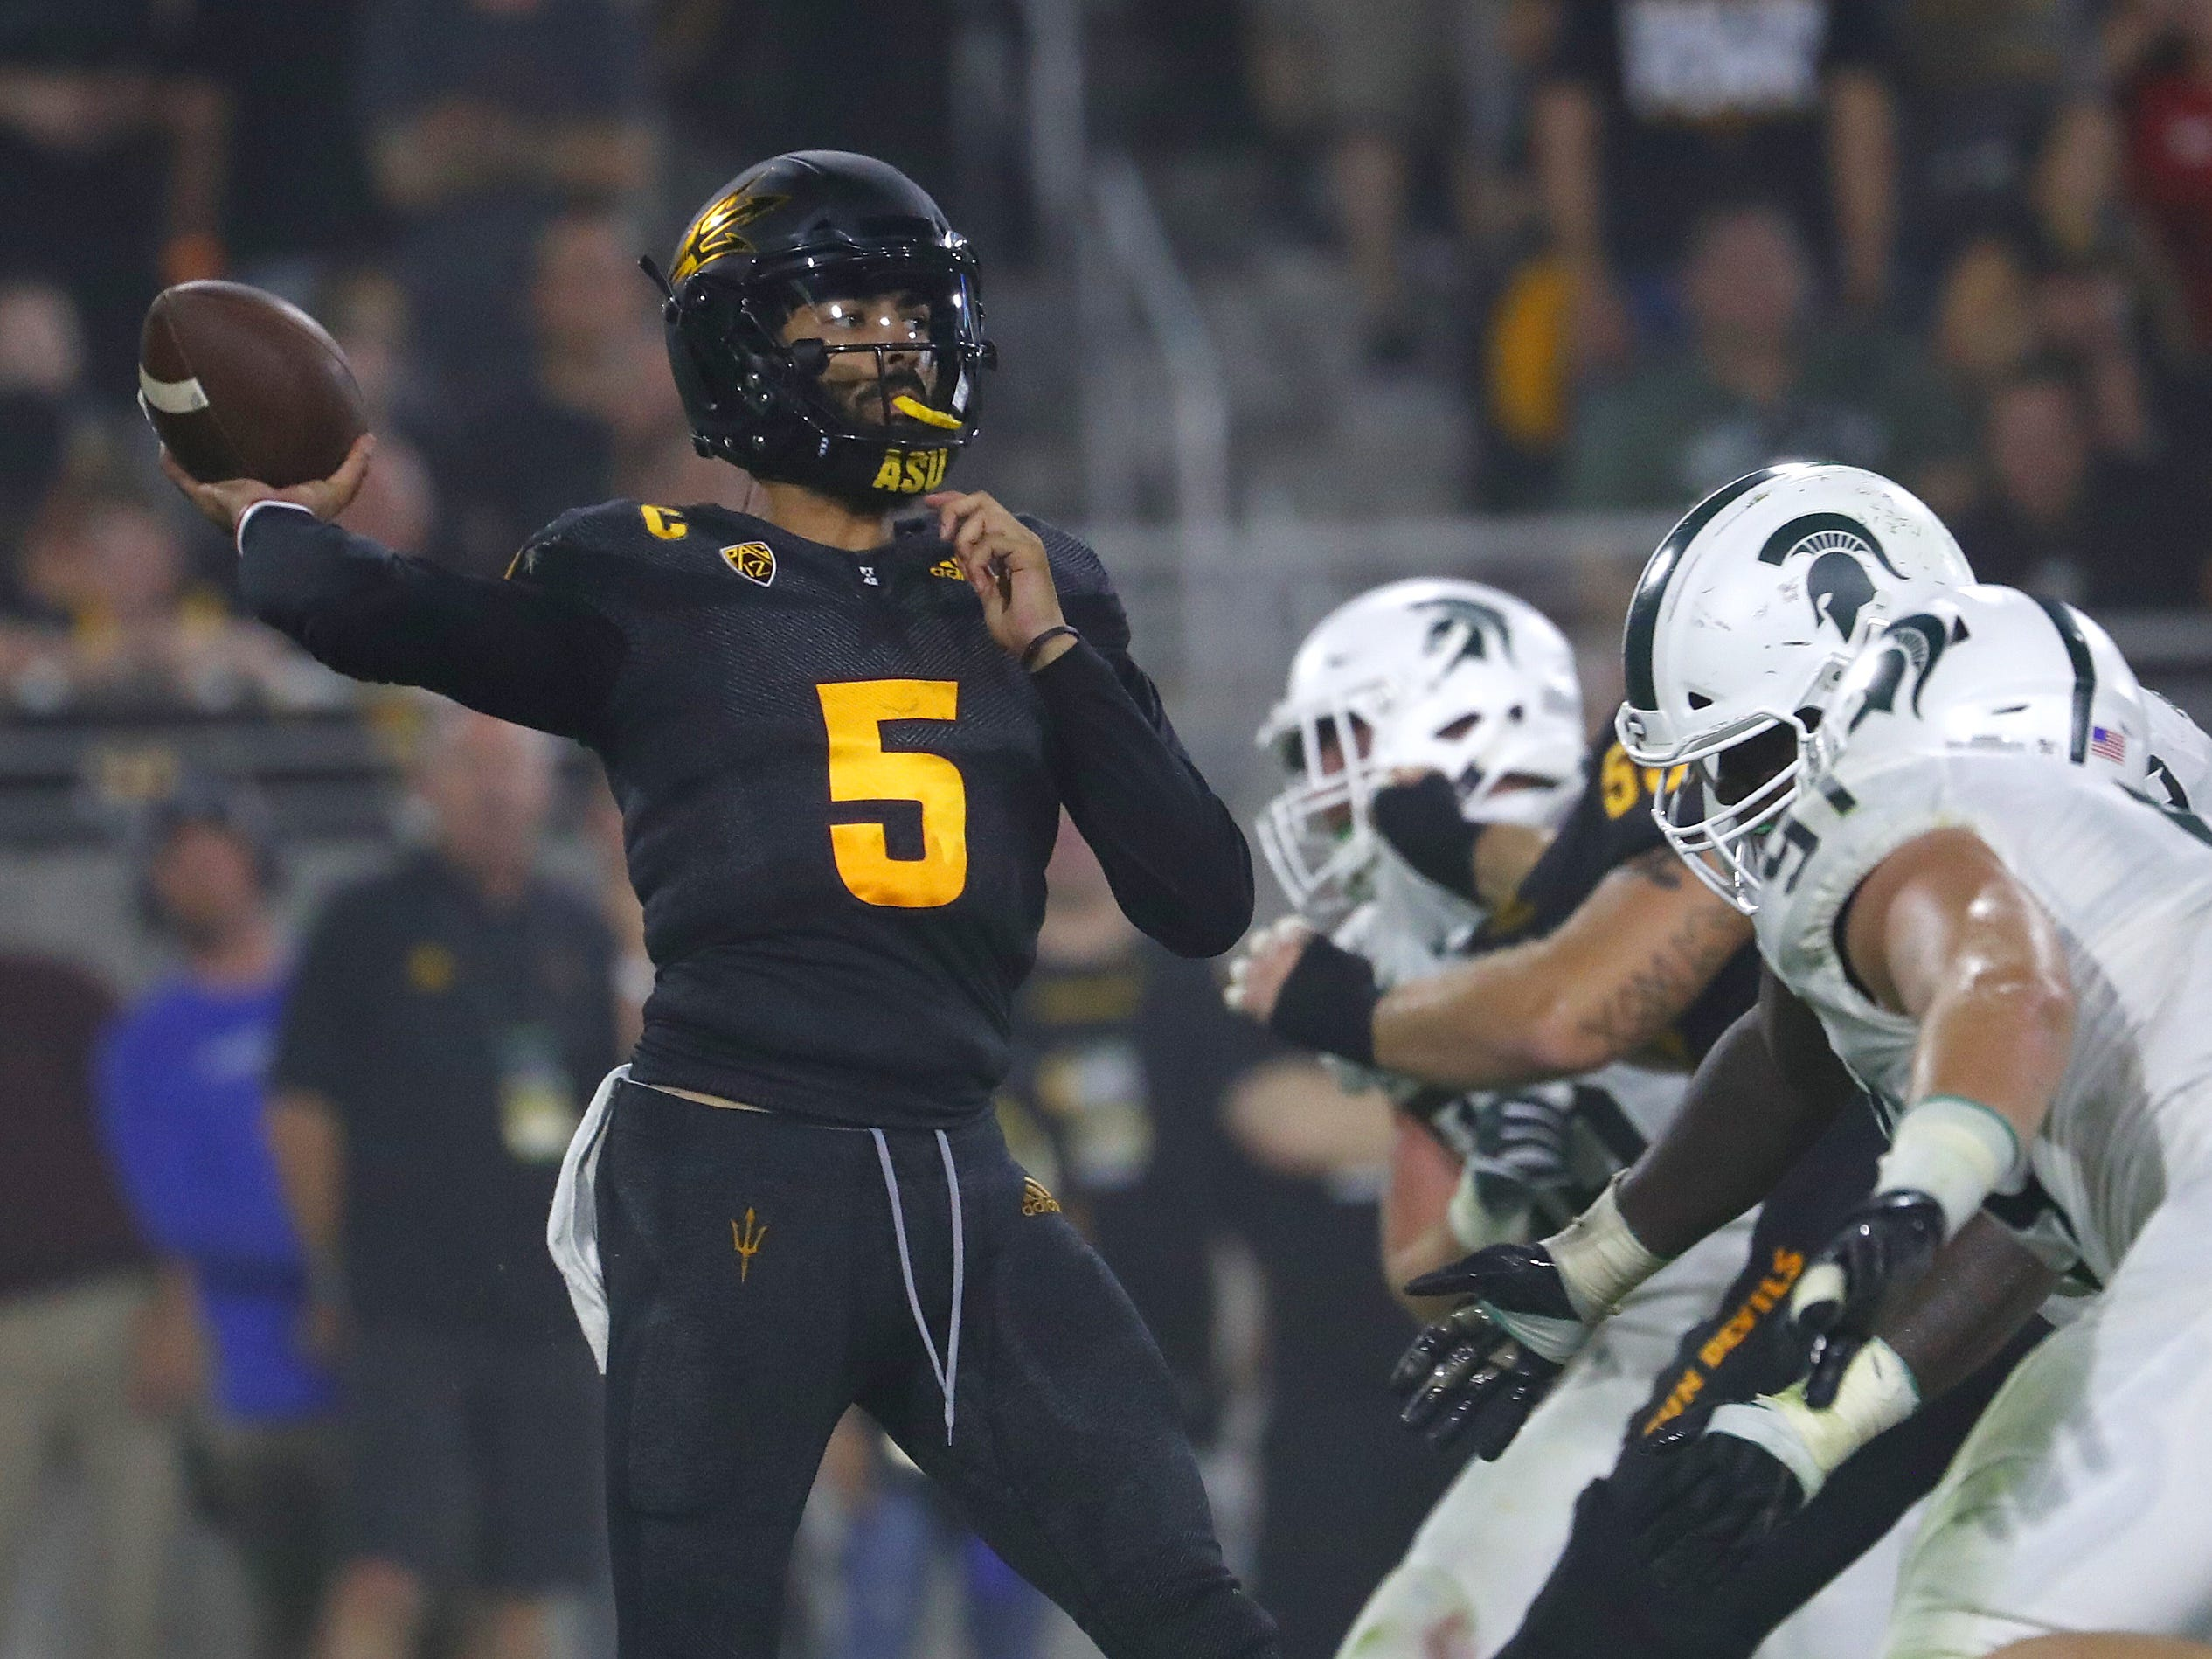 Arizona State Sun Devils quarterback Manny Wilkins (5) throws a pass under pressure from Michigan State during the second quarter at Sun Devil Stadium in Tempe, Ariz. on Sept. 8, 2018.